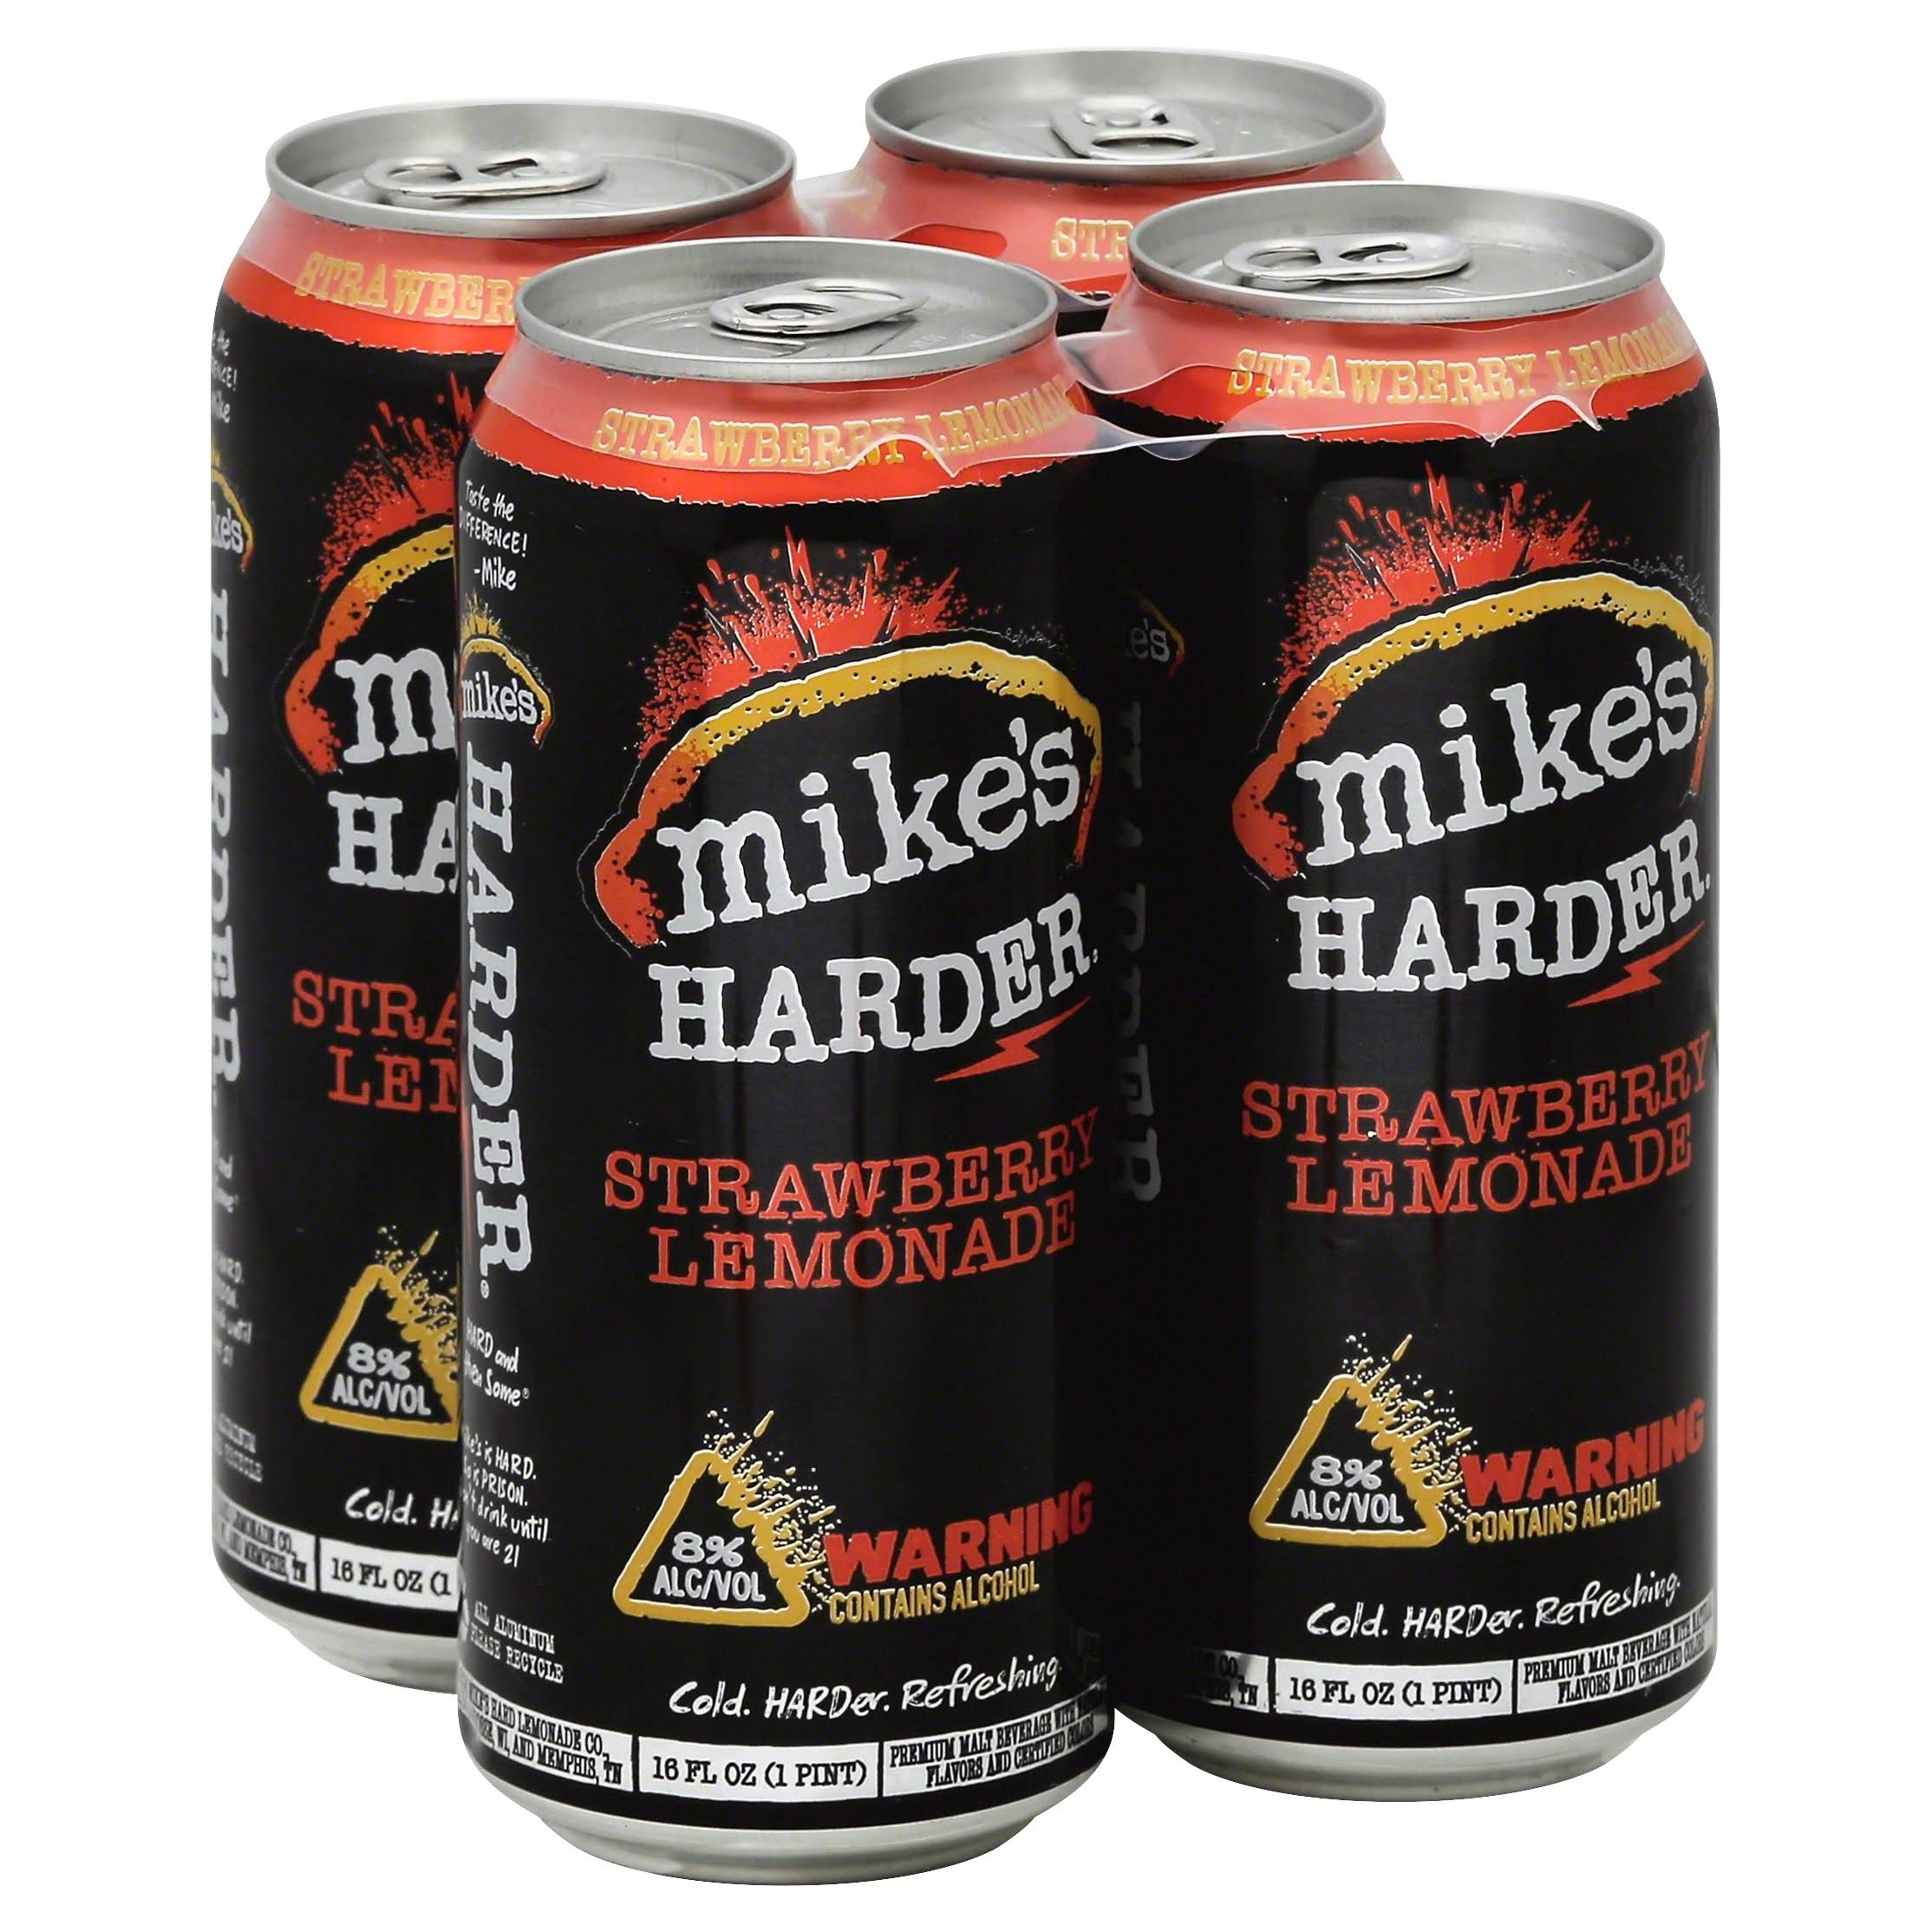 Mikes Harder Malt Beverage, Premium, Strawberry Lemonade - 4 pack, 16 fl oz cans